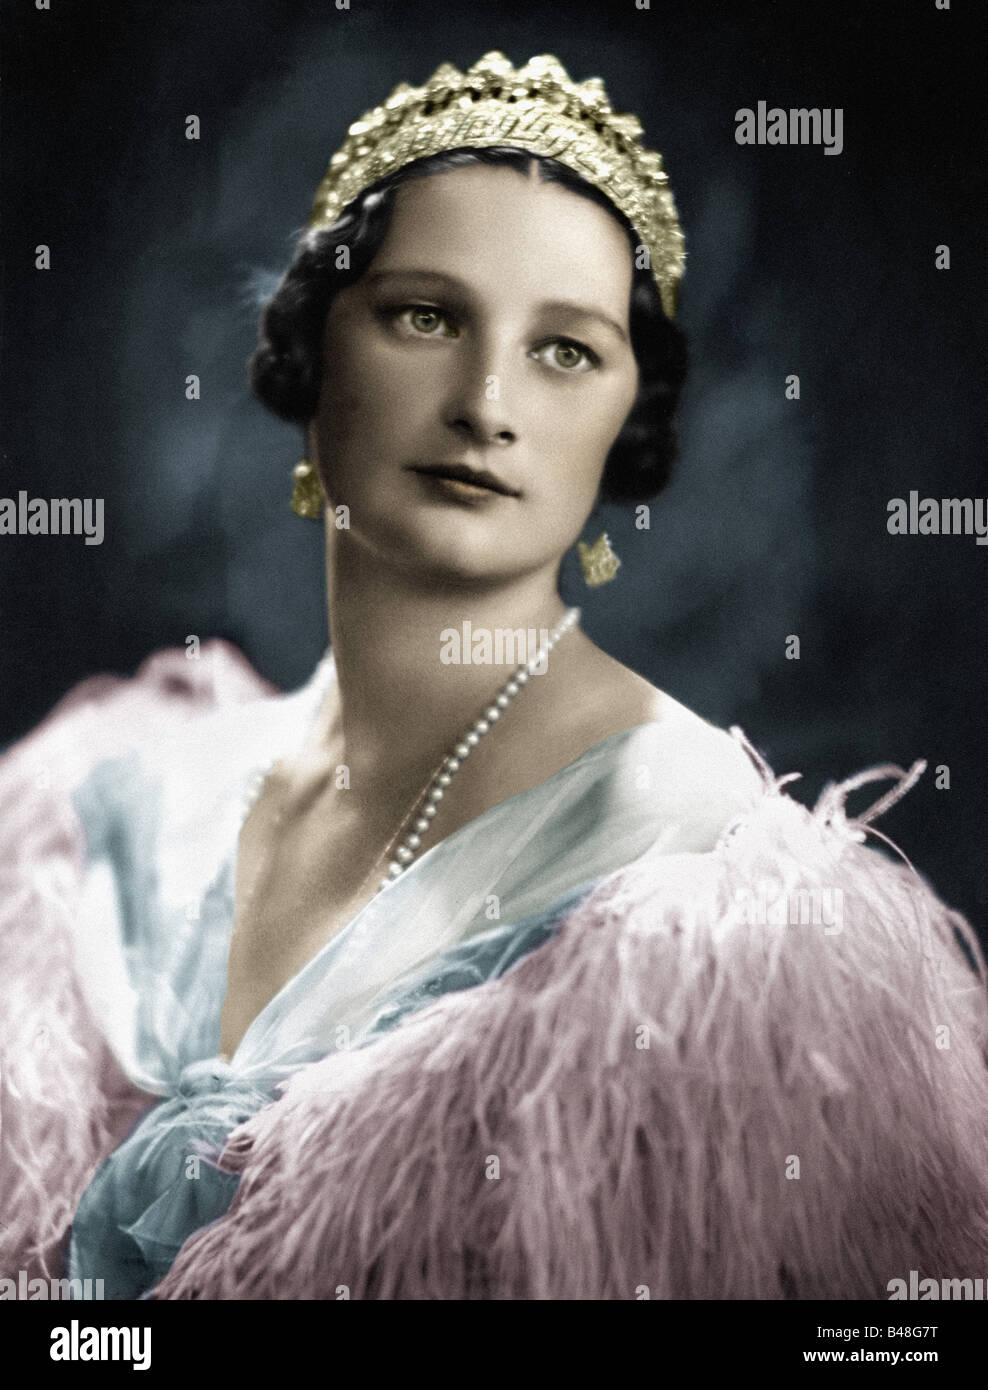 Astrid, 17.11.1905 - 29.8.1935, Queen Consort of Belgium  10.11.1926 - 29.8.1935, portrait, late 1920s, later coloured, - Stock Image